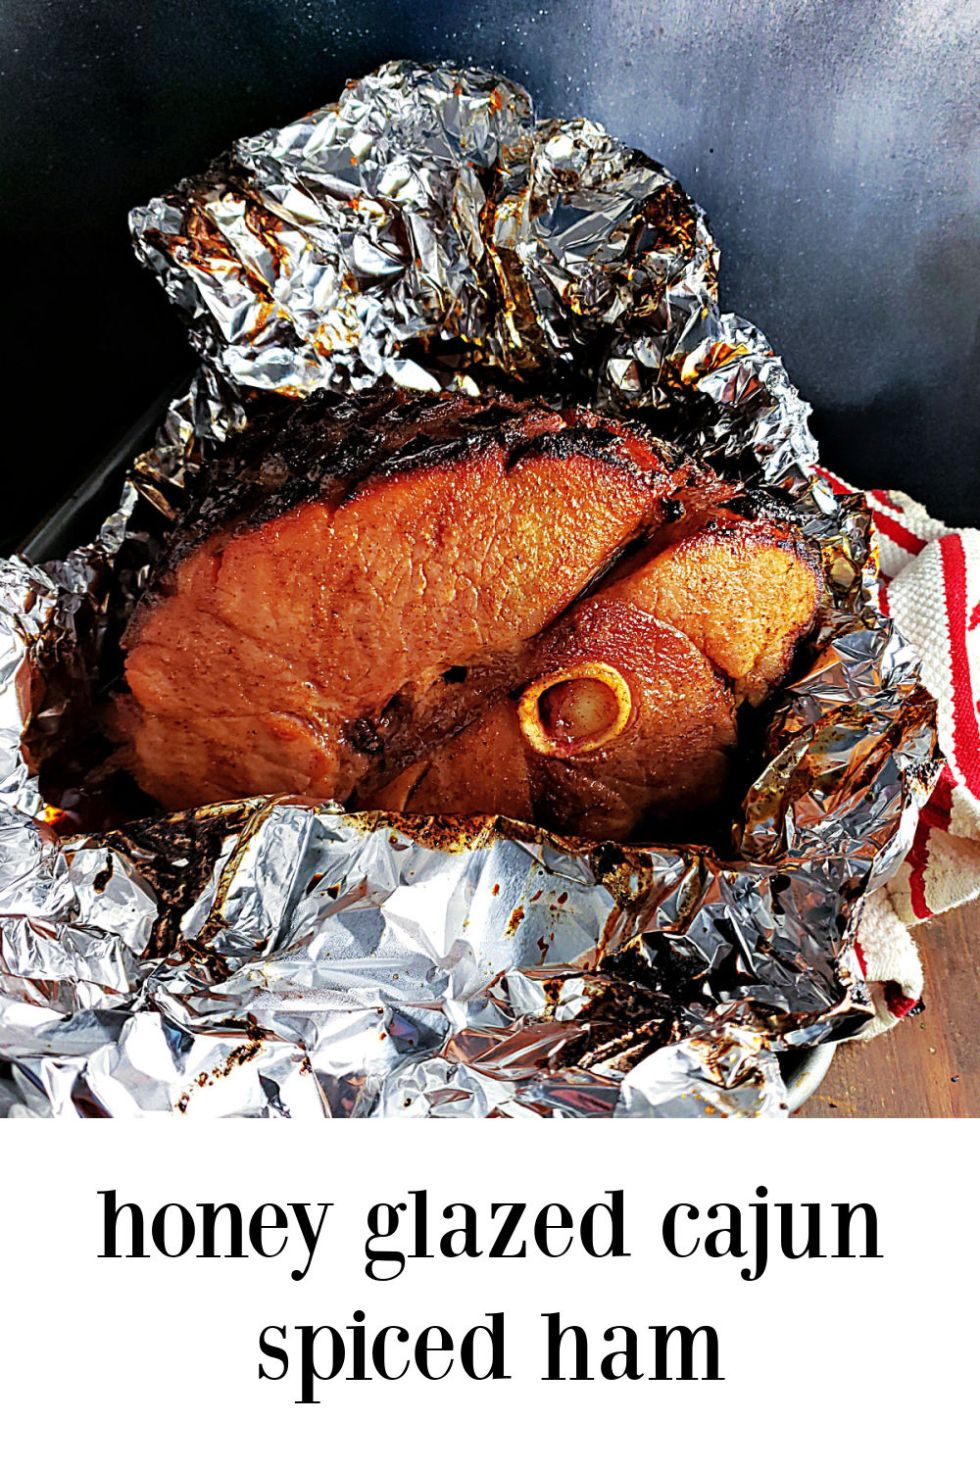 Honey Glazed Cajun Spiced Ham is a fave. The honey spiced glaze hits the perfect sweet spot, the magical place where your taste buds sing without any real heat. #Honey Glazed Cajun Ham #Honey Glazed Ham #Cajun Ham